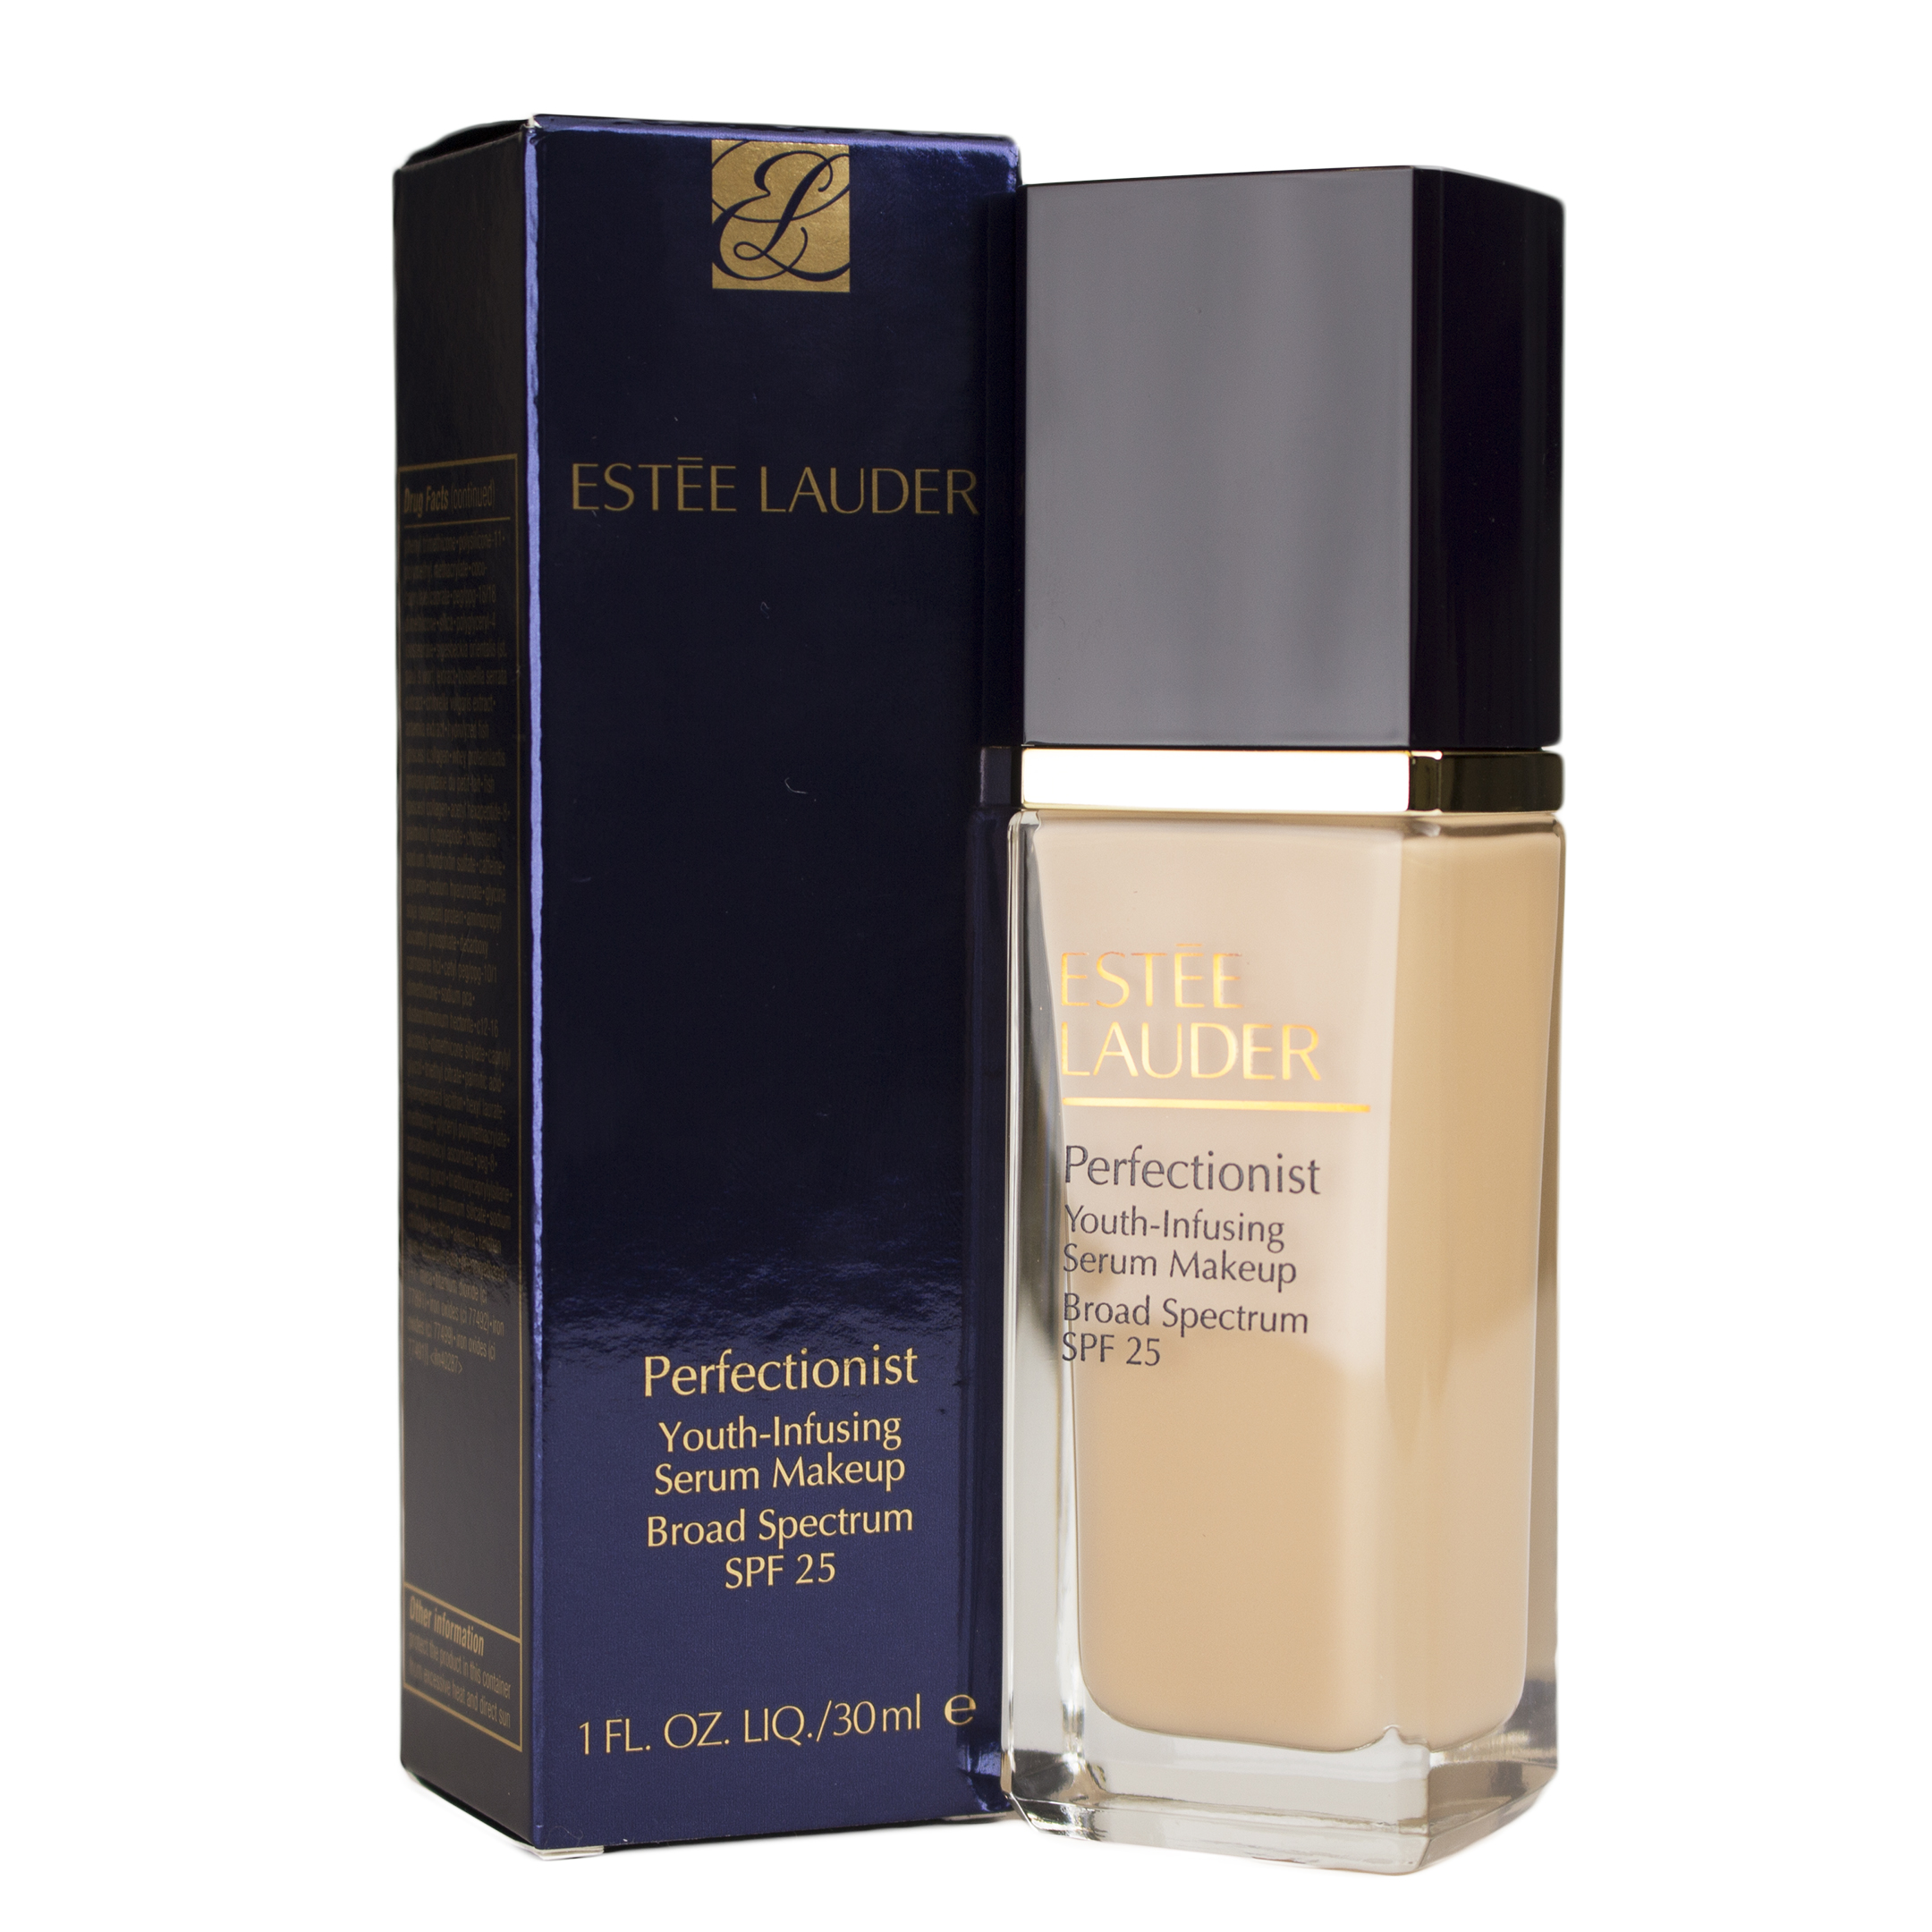 Estee Lauder Perfectionist Youth Infusing Serum Makeup Spf 25 1oz